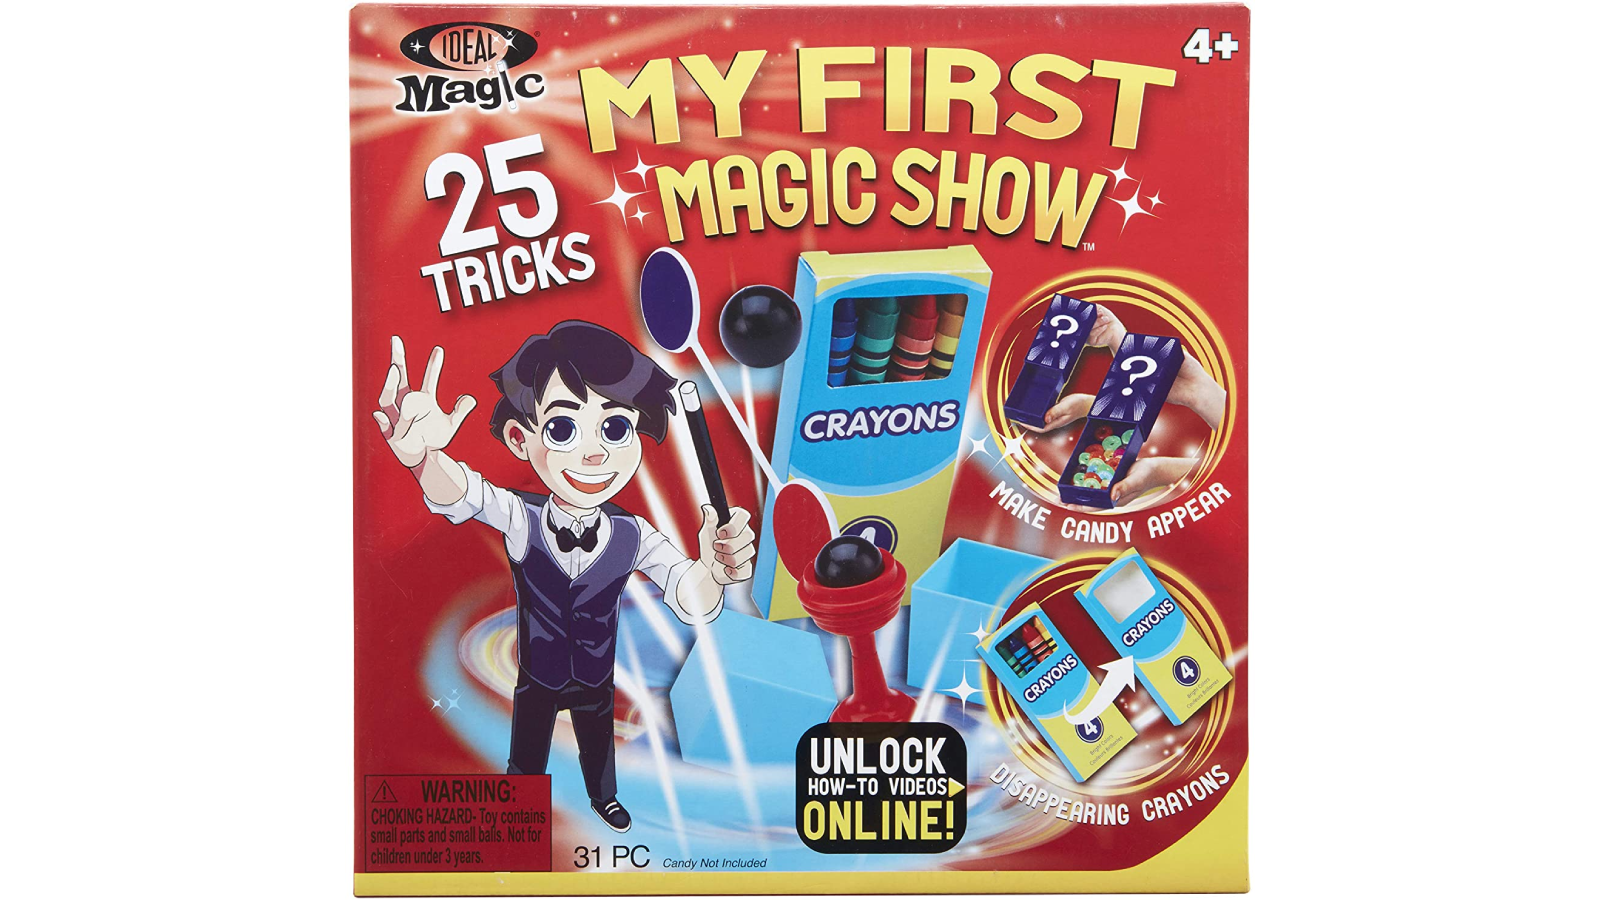 The front of a magic kit box with a cartoon magician.